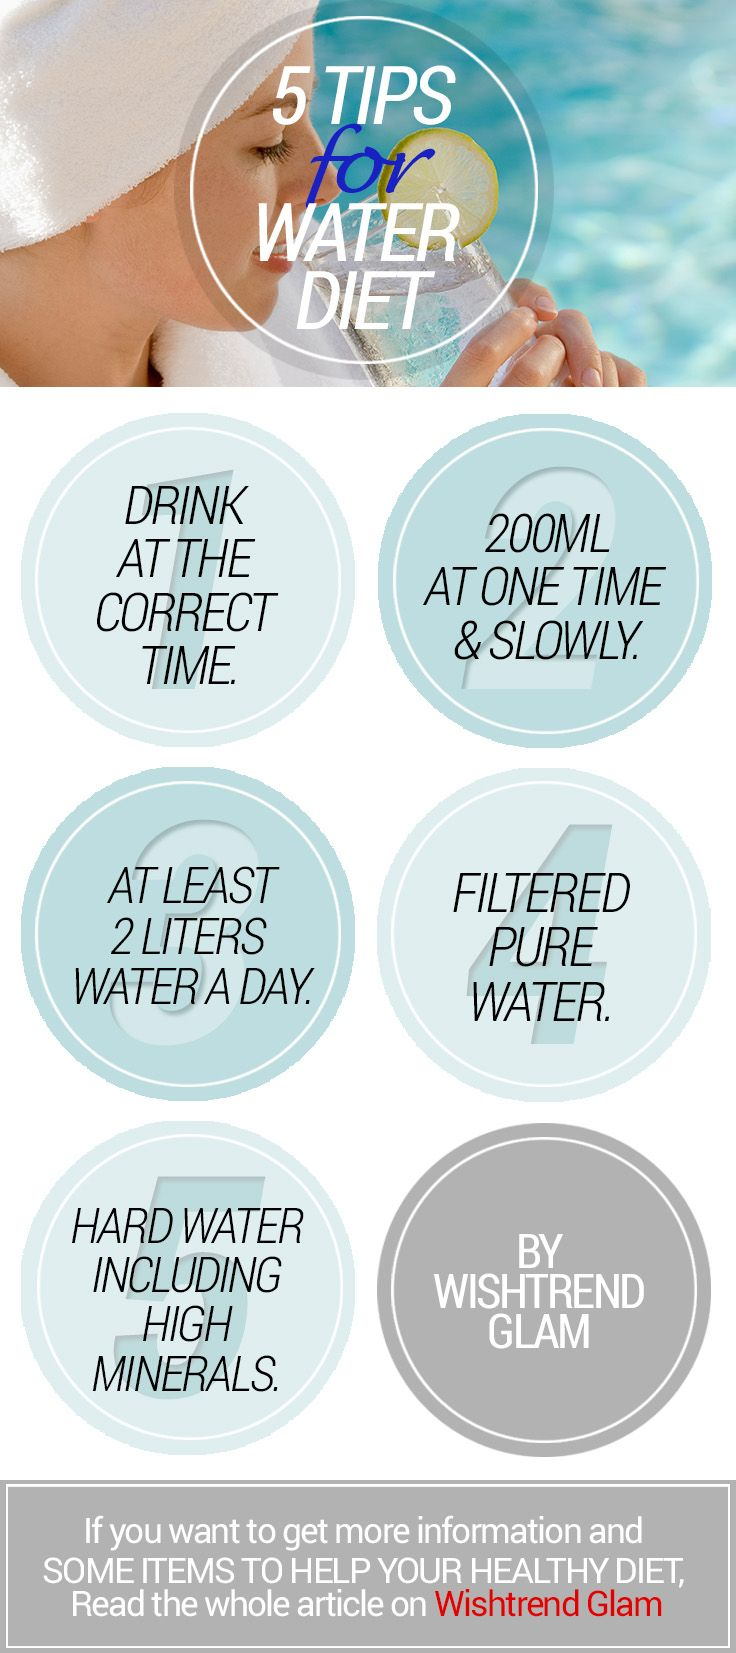 How to Do a Water Diet